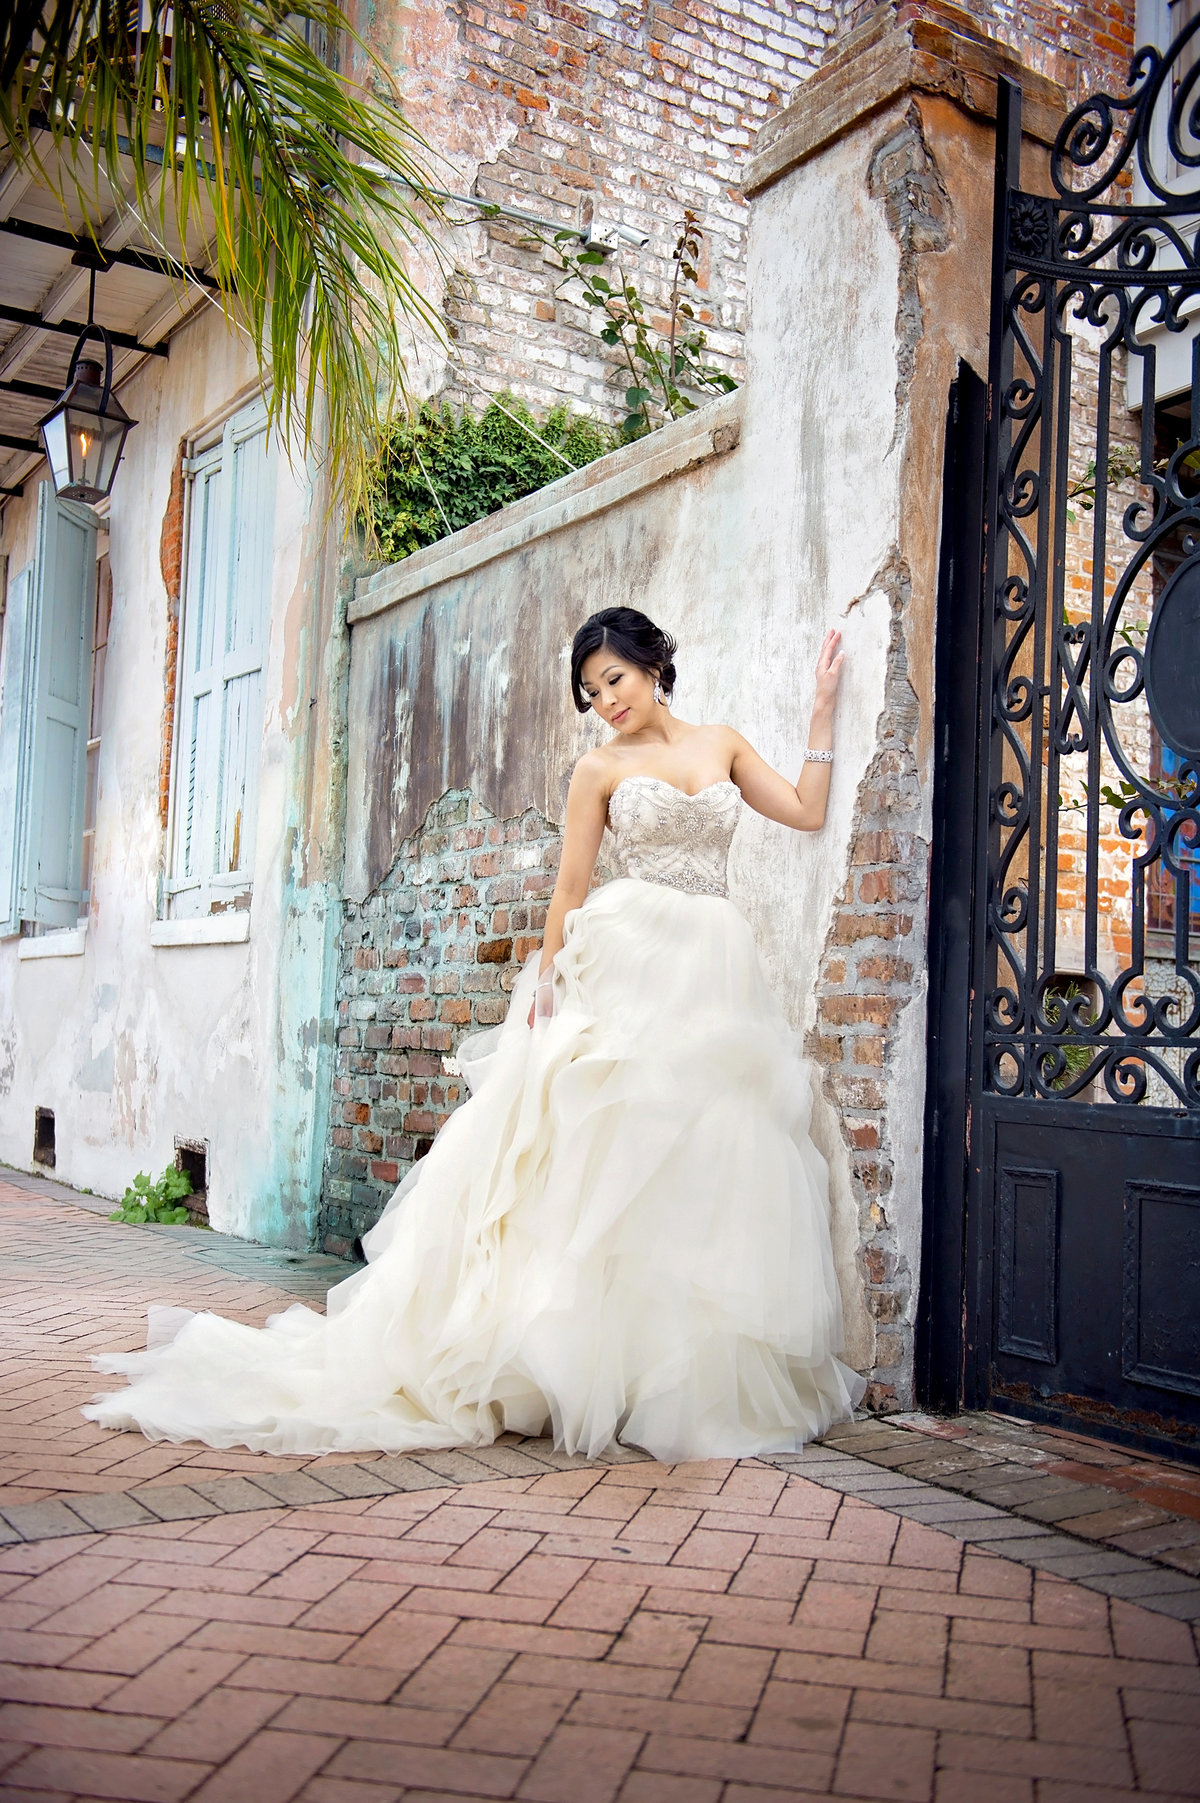 New Orleans Wedding Photographyrace_and_religious_nola10120